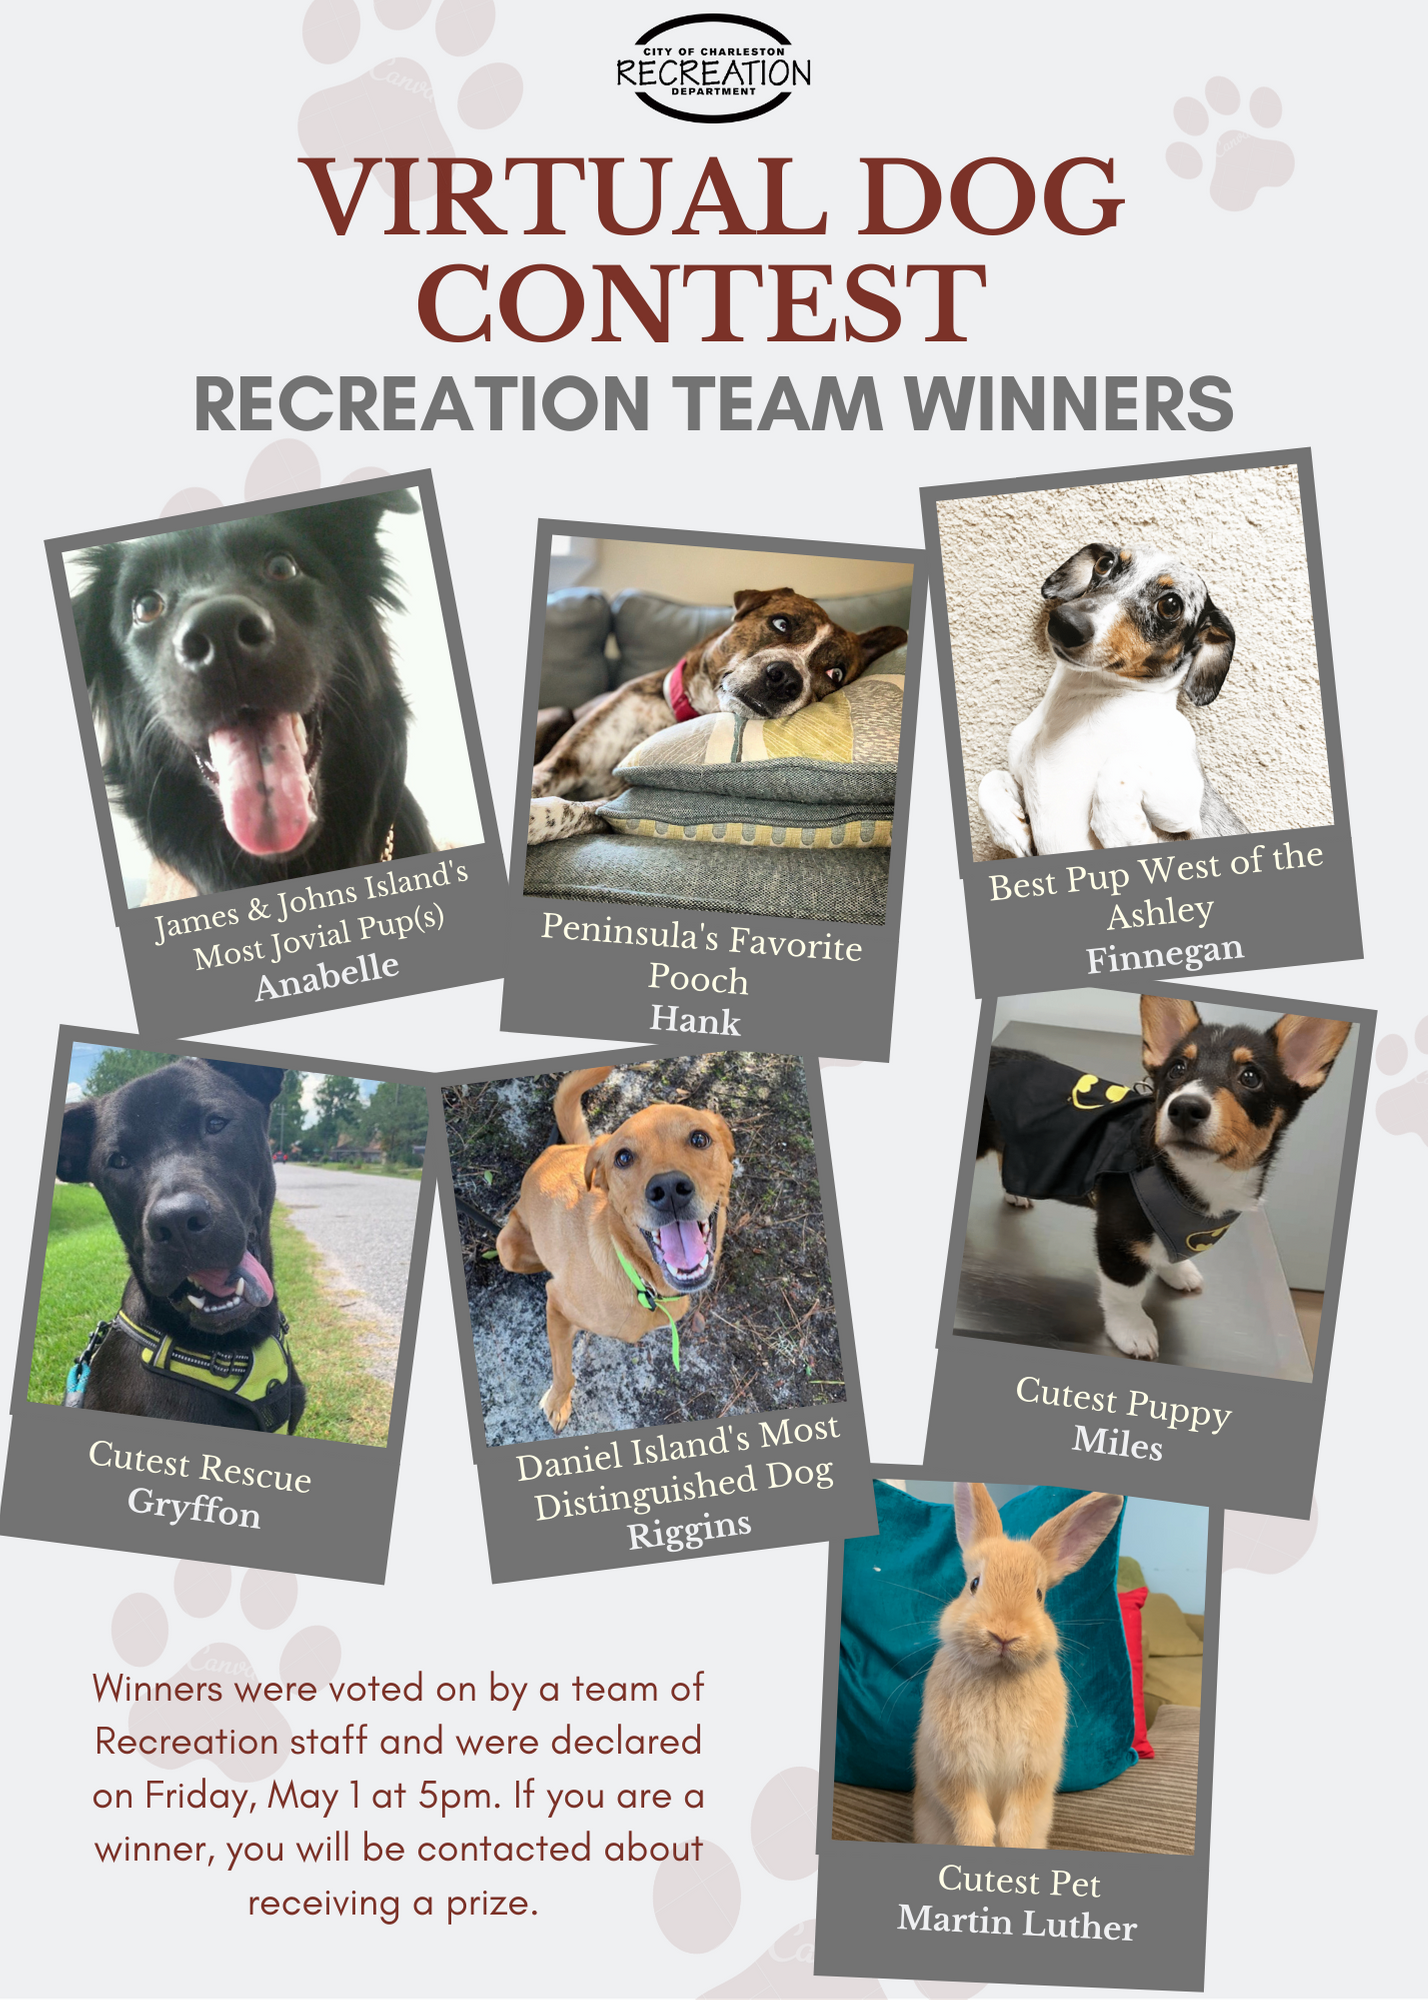 Virtual Dog Contest - Rec Team Winners (2)